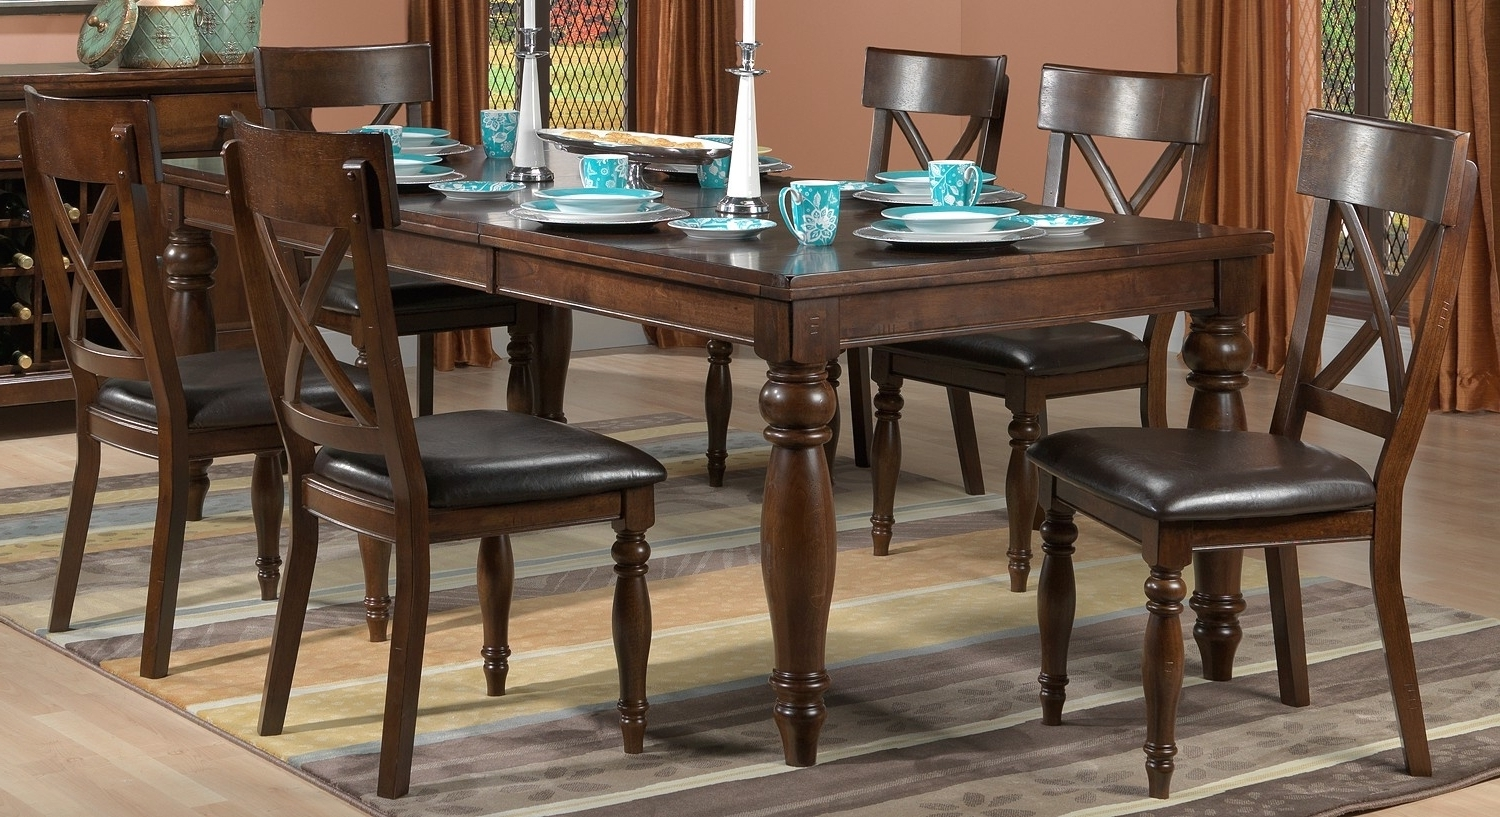 Famous Dining Room Furniture Kingston Ontario – Dining Tables Ideas Pertaining To Kingston Dining Tables And Chairs (View 4 of 25)